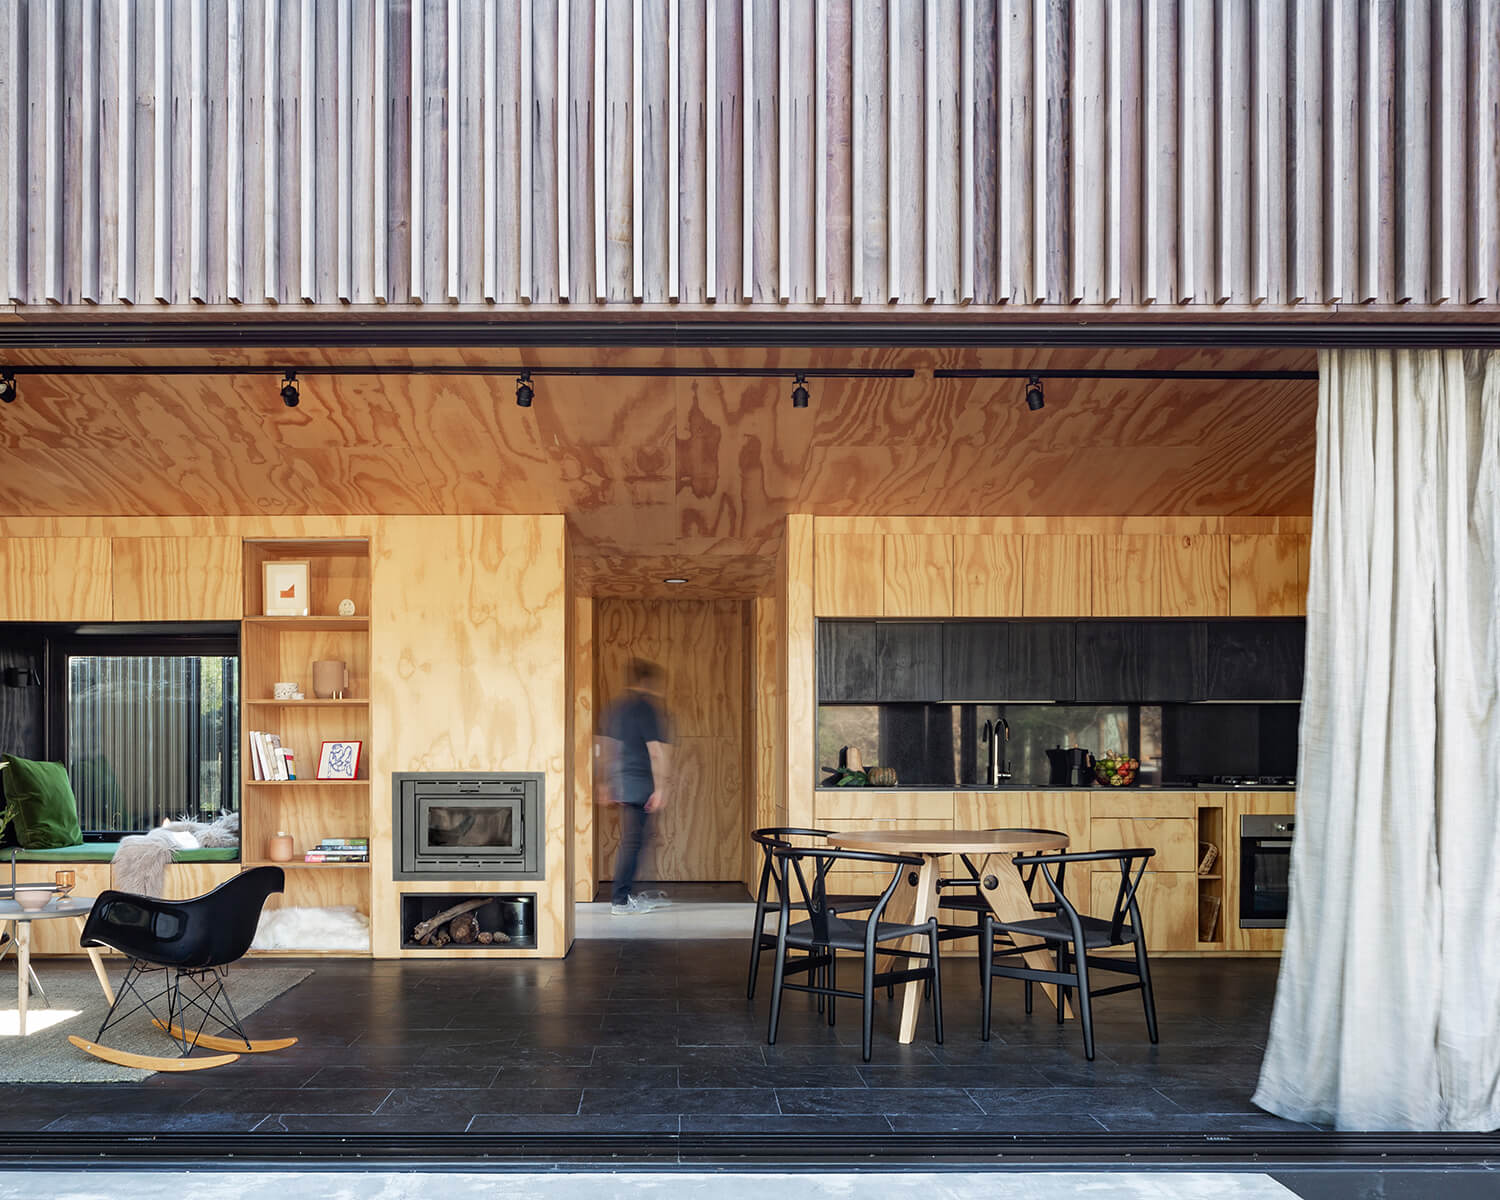 Exterior view of the cabin with the sliding glass doors open, showing the open concept living-dining area